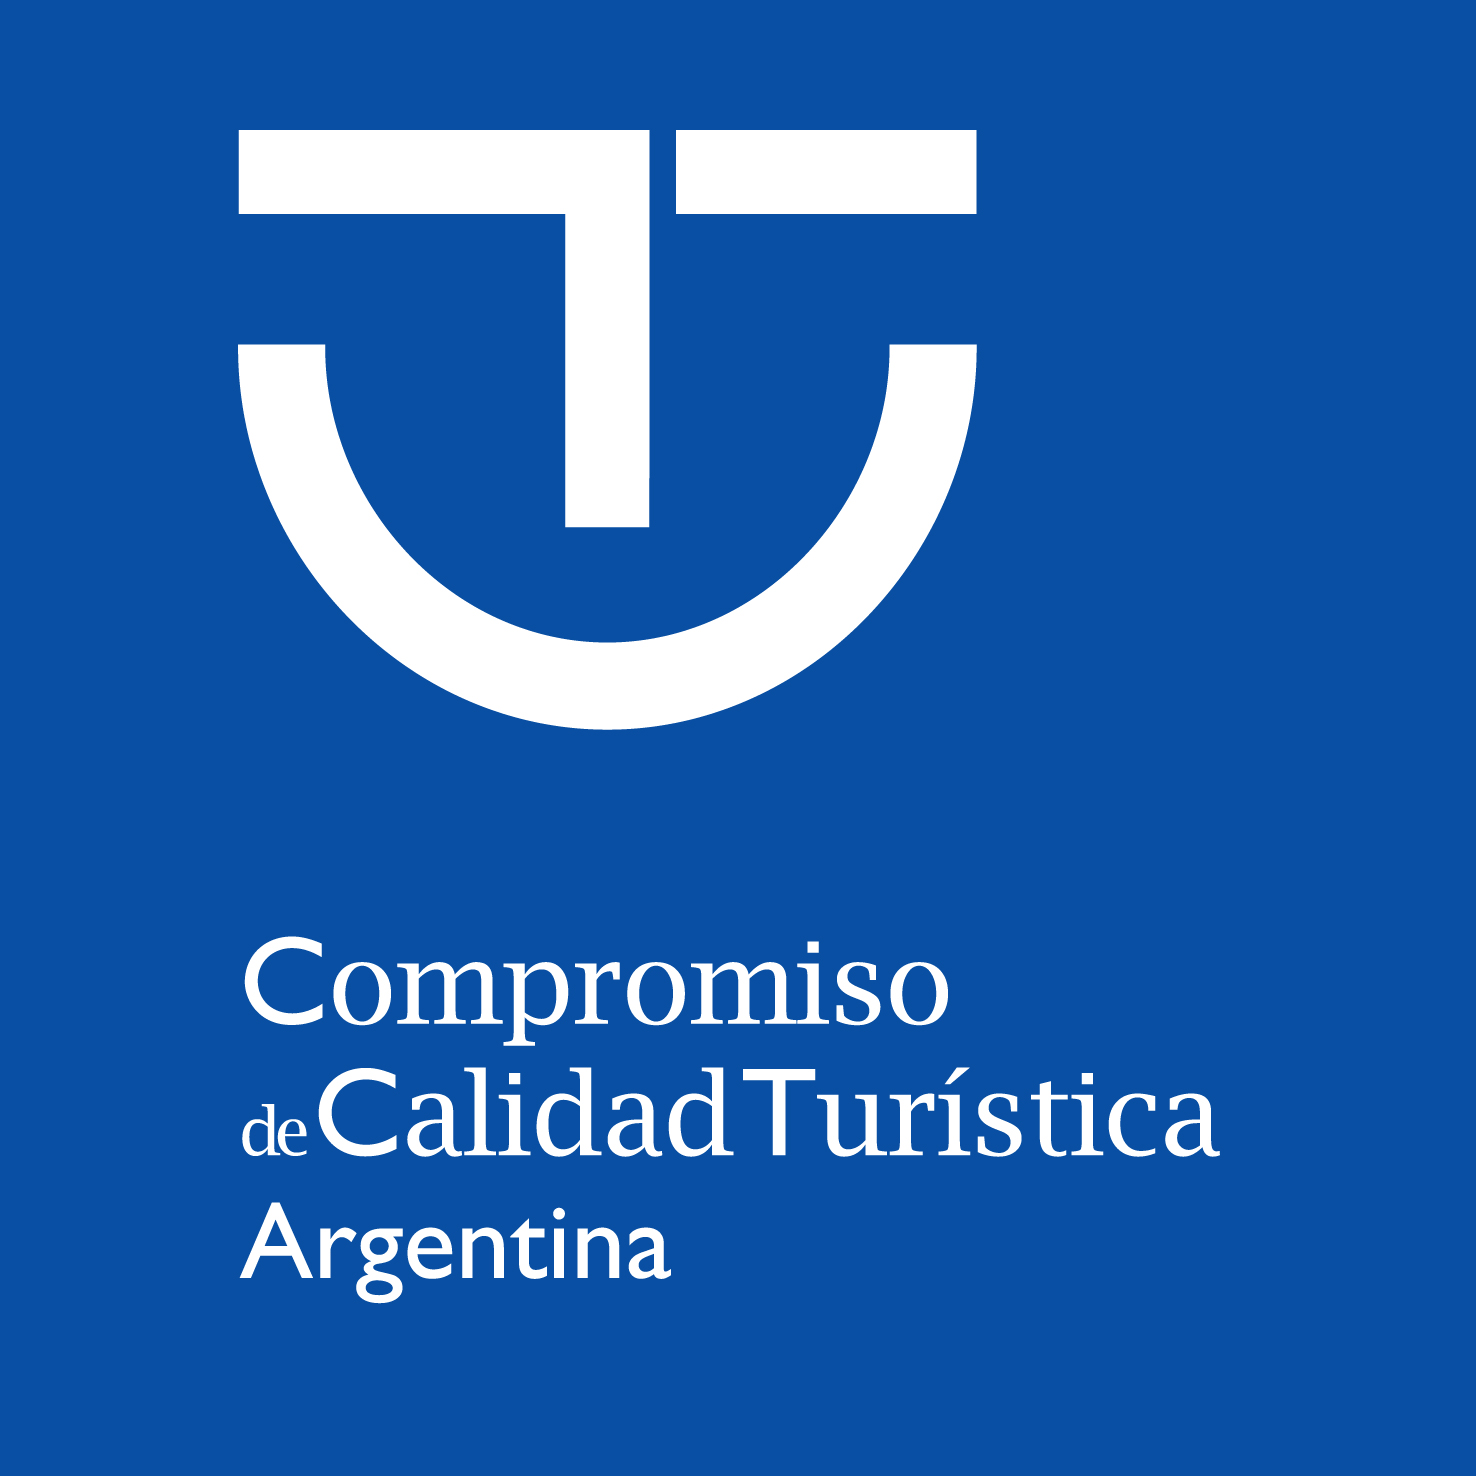 Compromiso de Calidad Turística